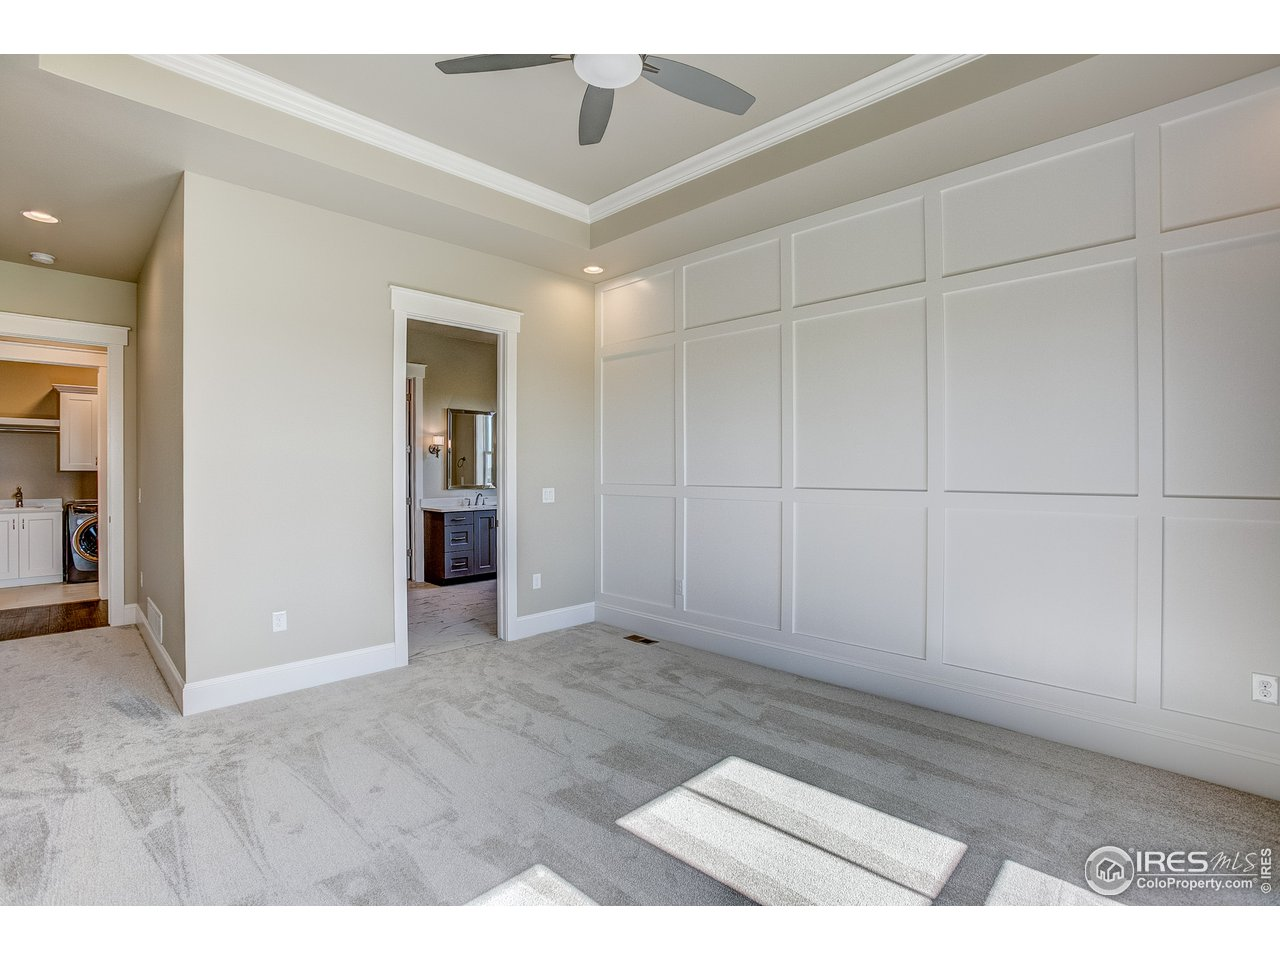 Master suite w/ accent wall